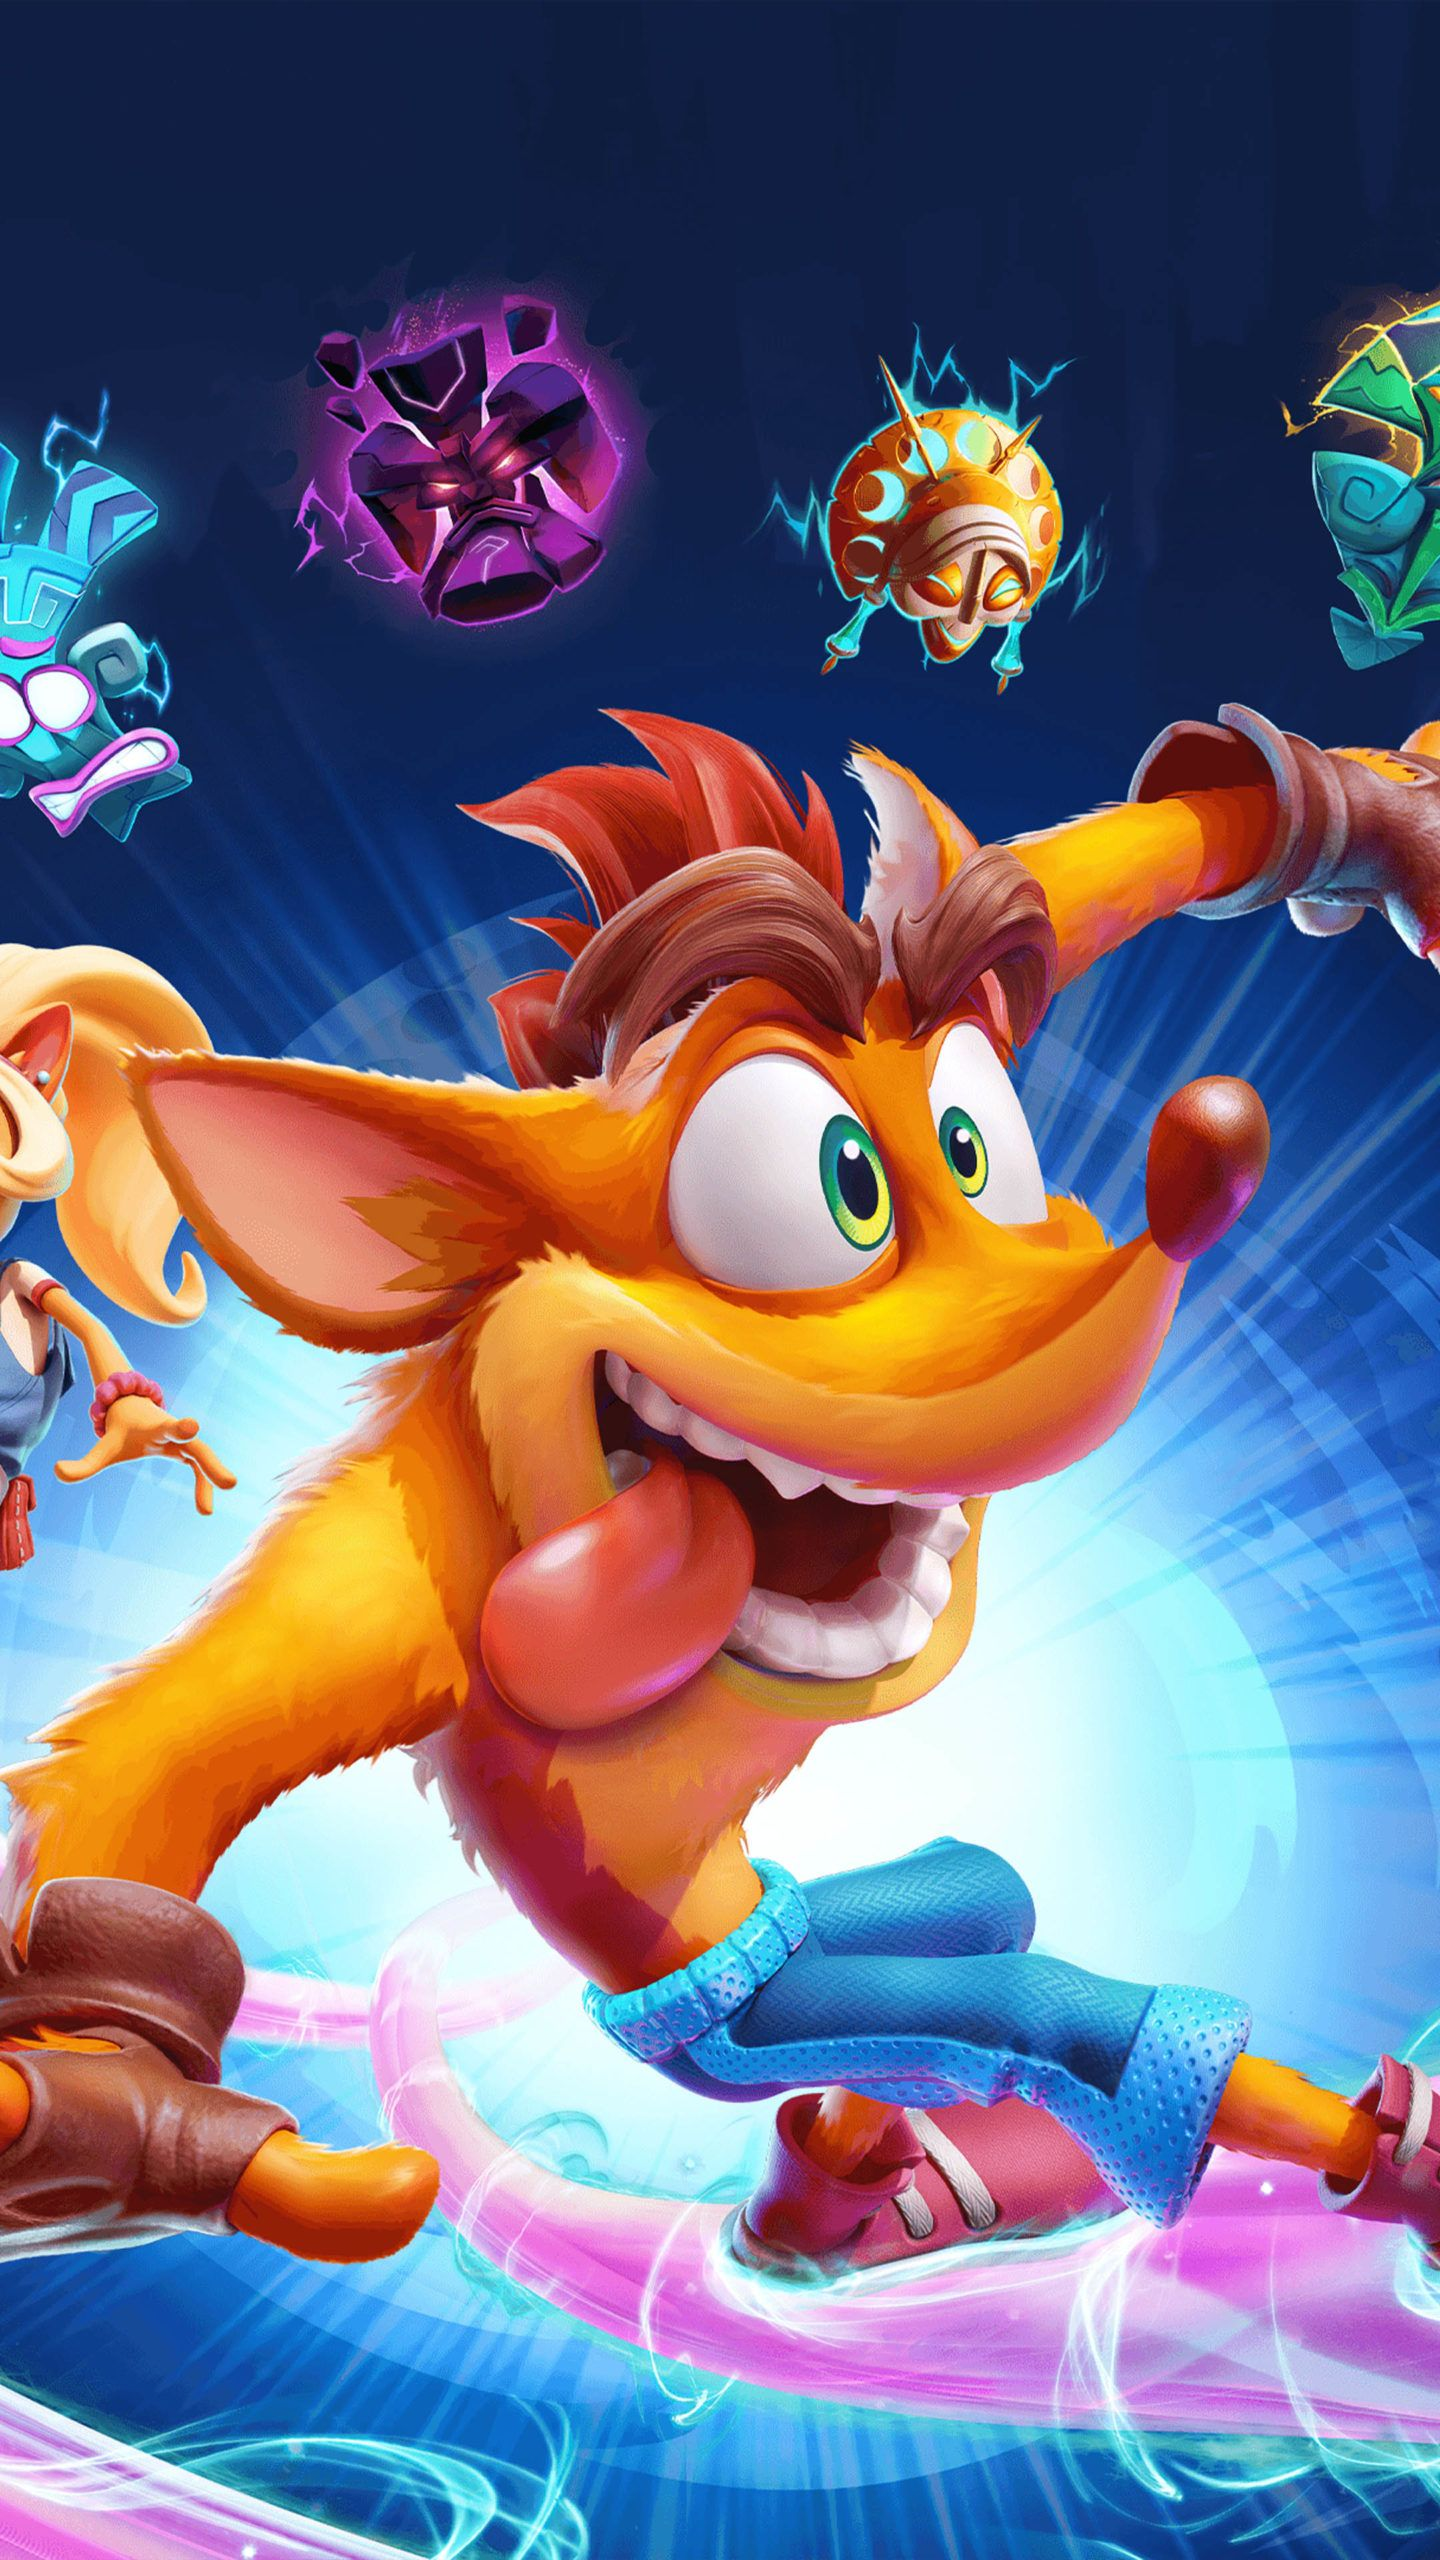 Crash Bandicoot 4 It's About Time Game Poster 4K Ultra HD